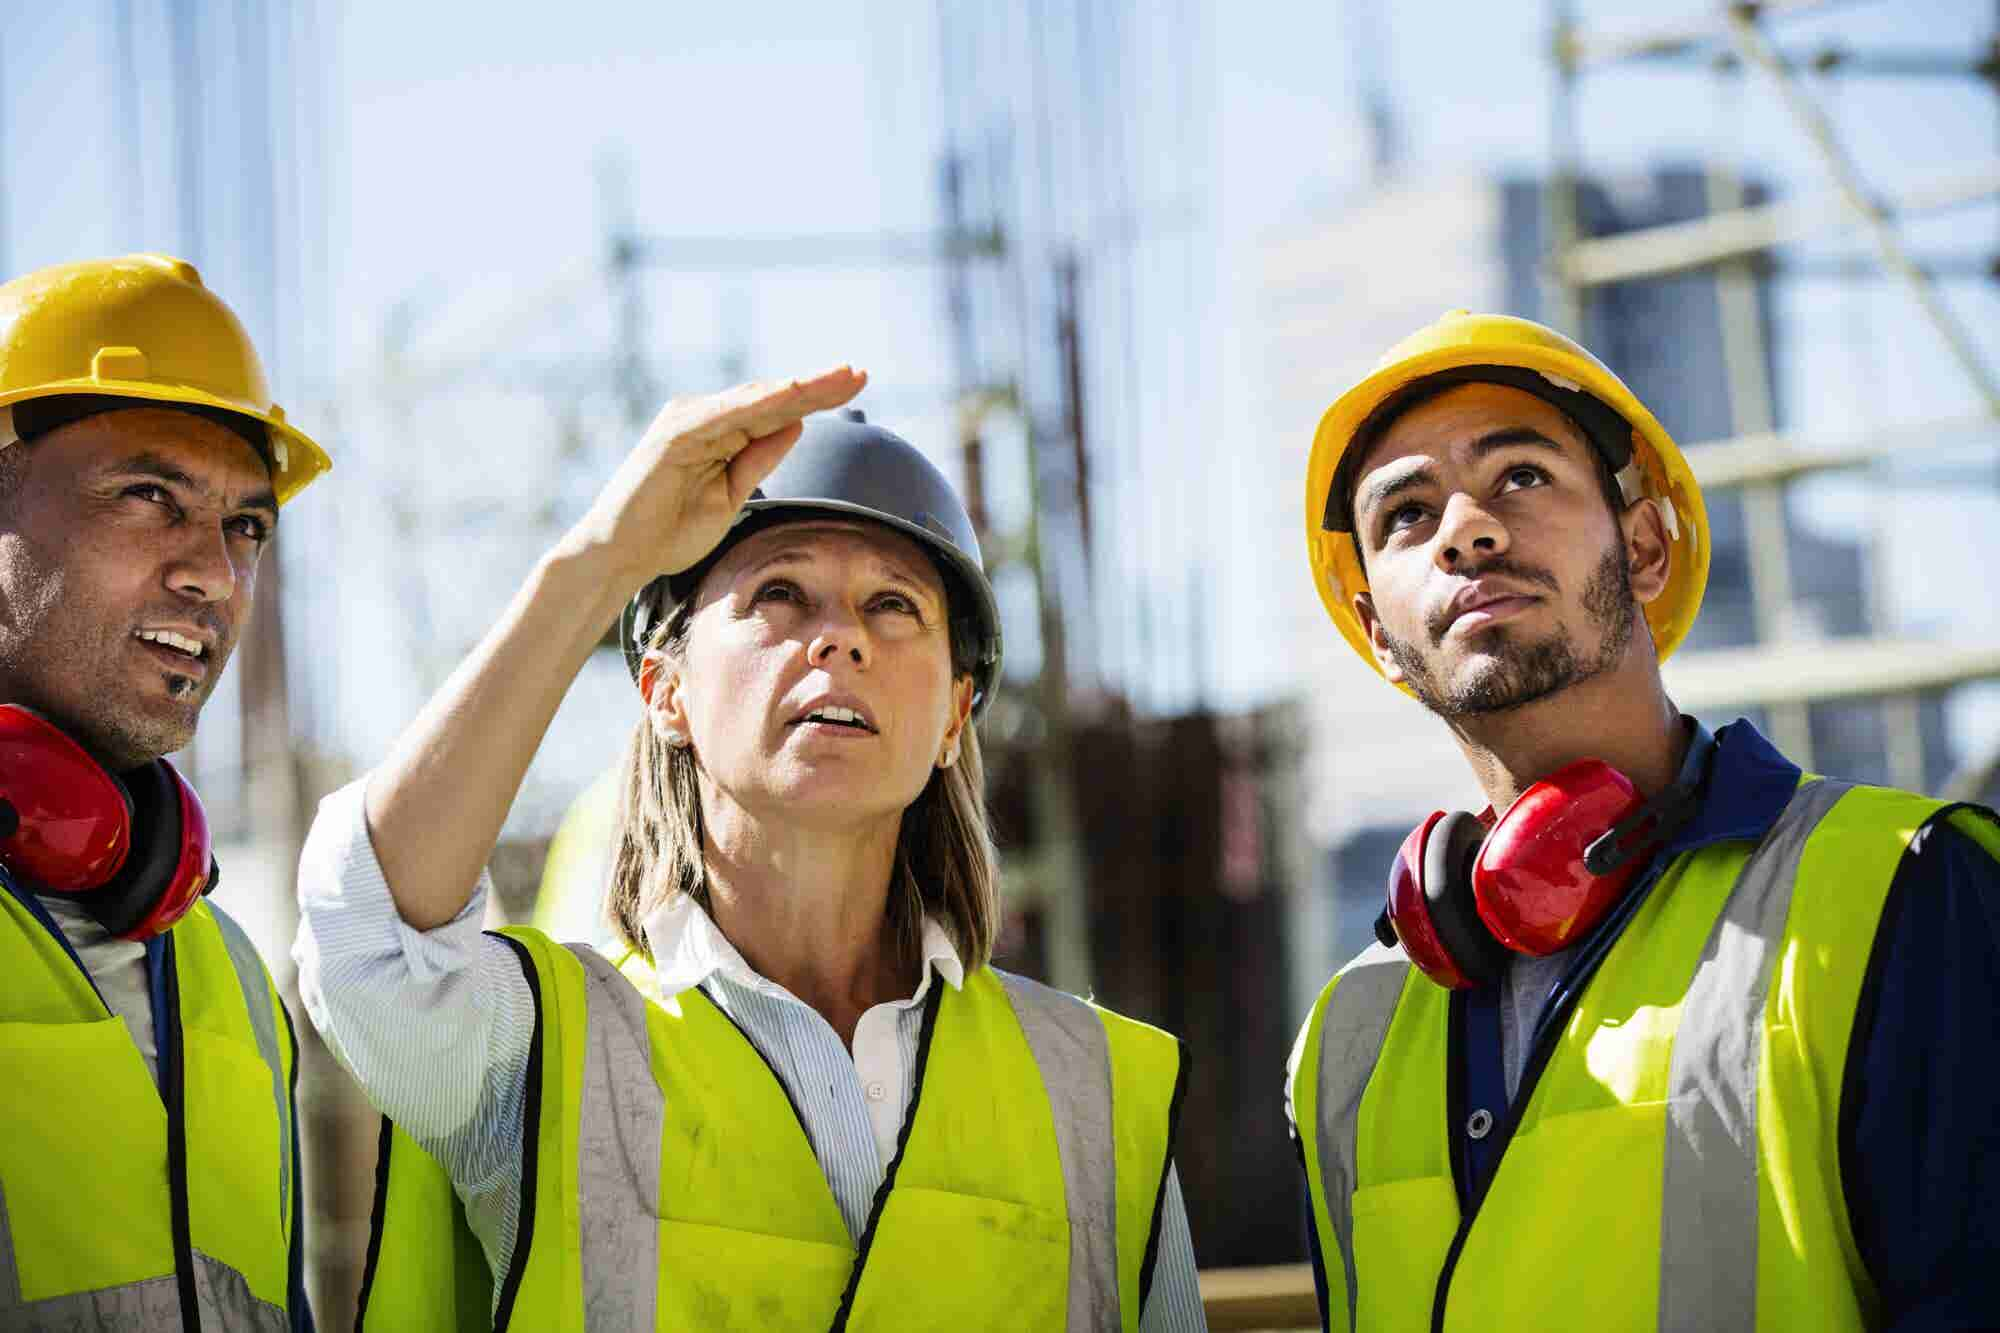 7 Ways Women in Construction Can 'Pave the Way' in Their Male-Dominated Field